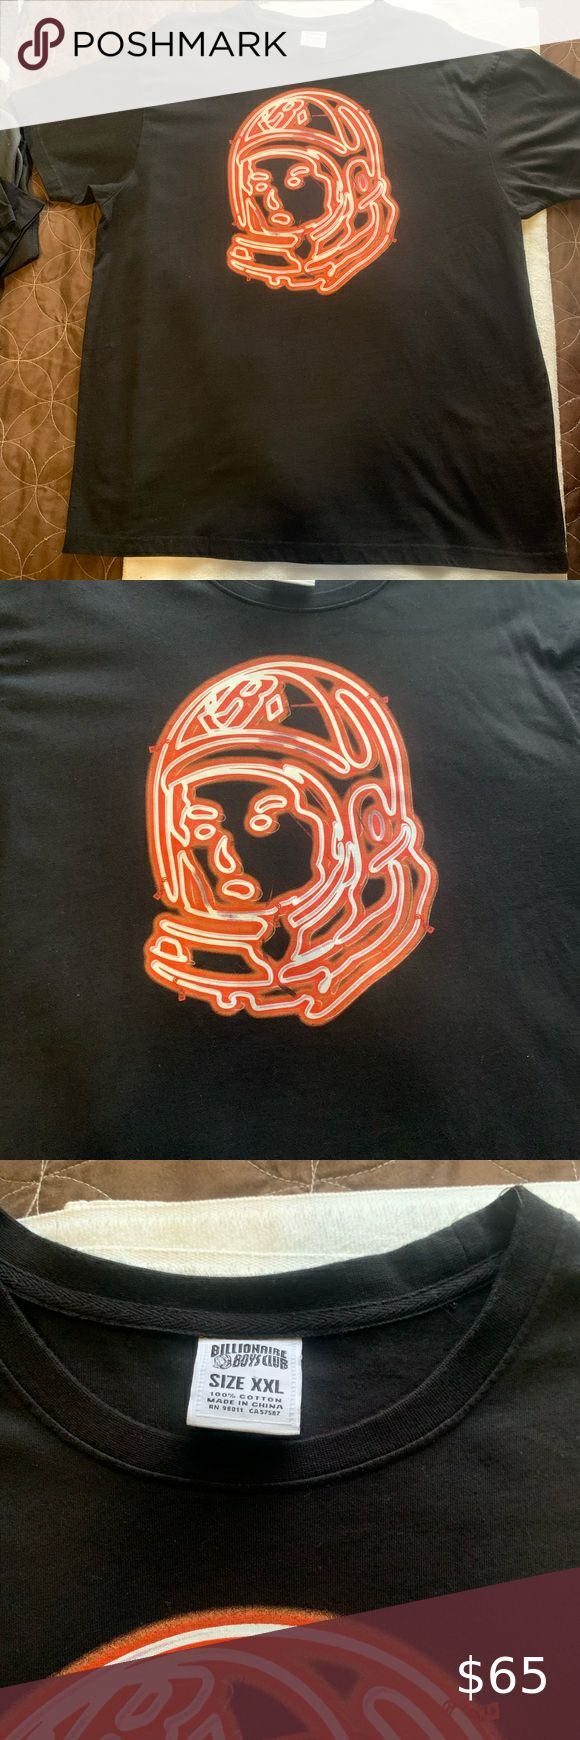 Billionaire Boys Club tee BRAN NEW .. Without tags